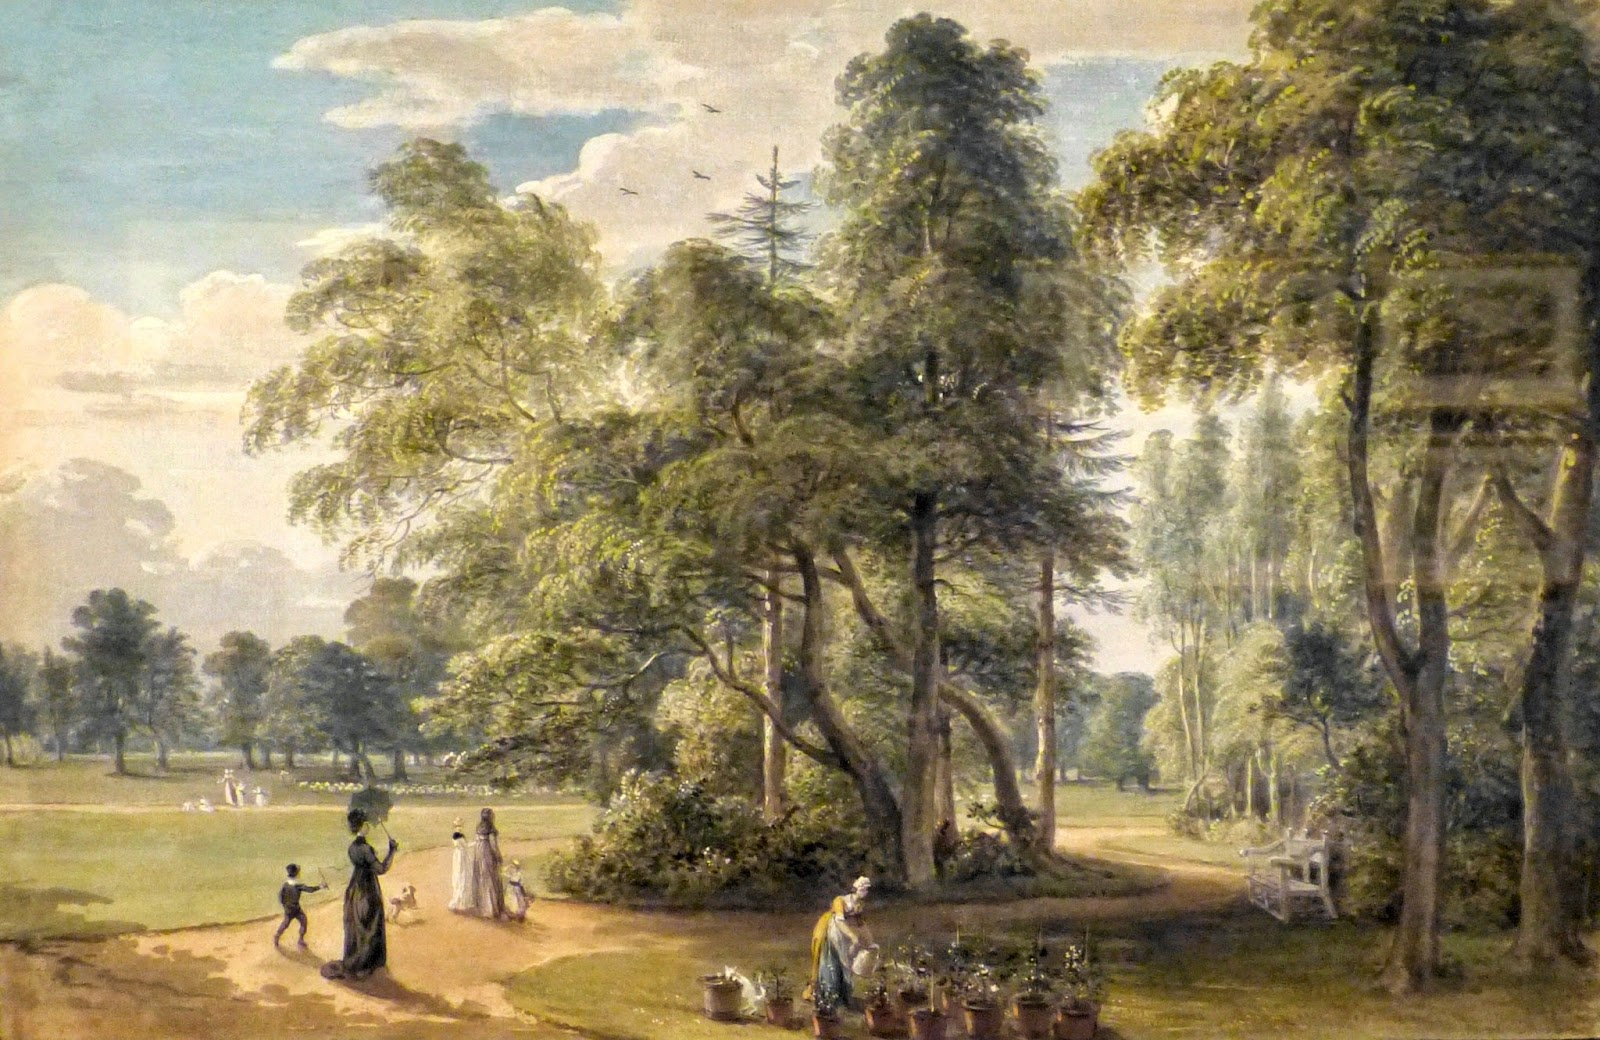 Exhibition Stand Windsor : Regency history painting paradise the art of garden